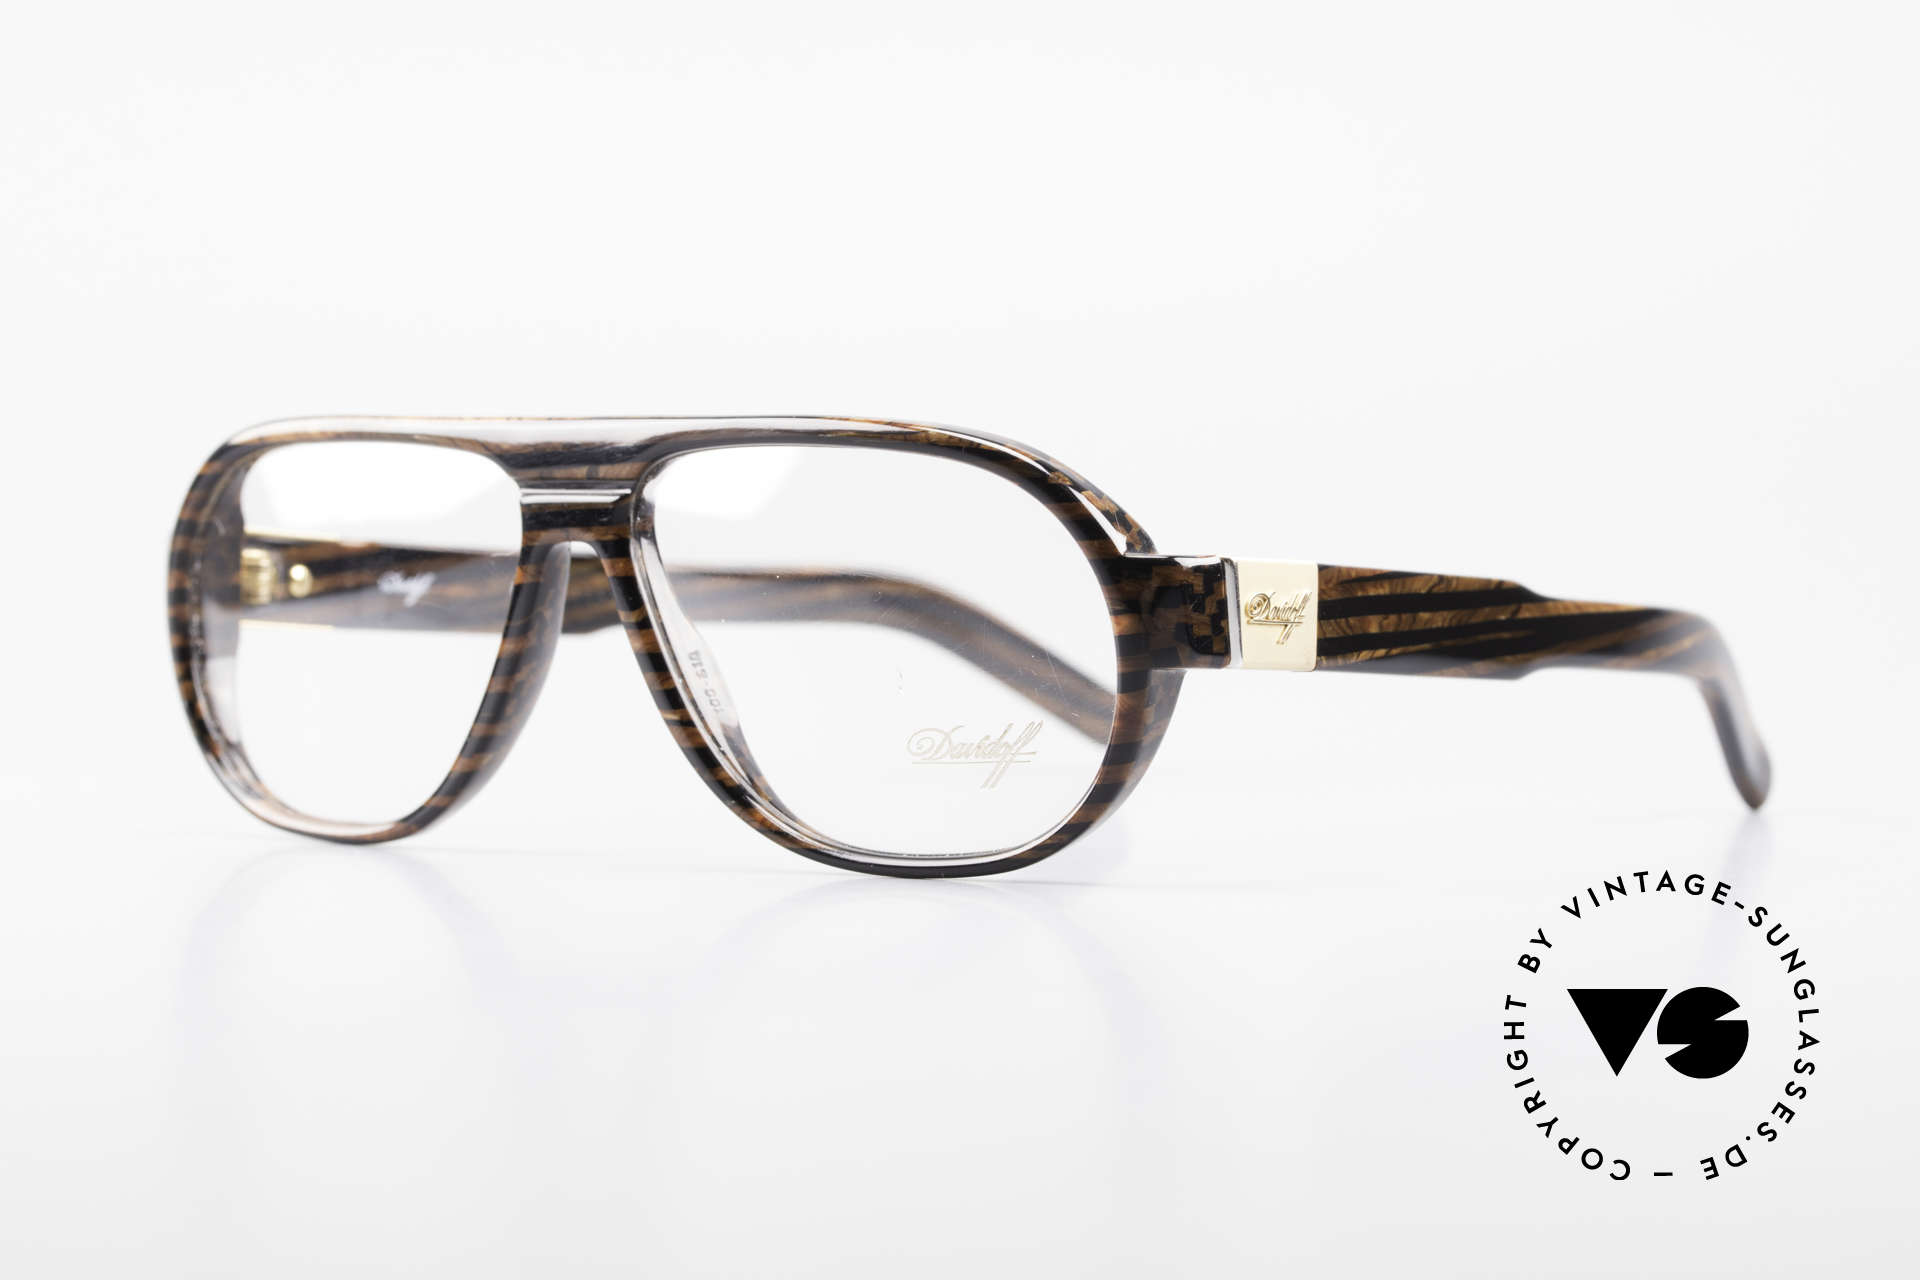 Davidoff 100 90's Men's Vintage Glasses, with gold-plated hinges and appliqué on the temples, Made for Men